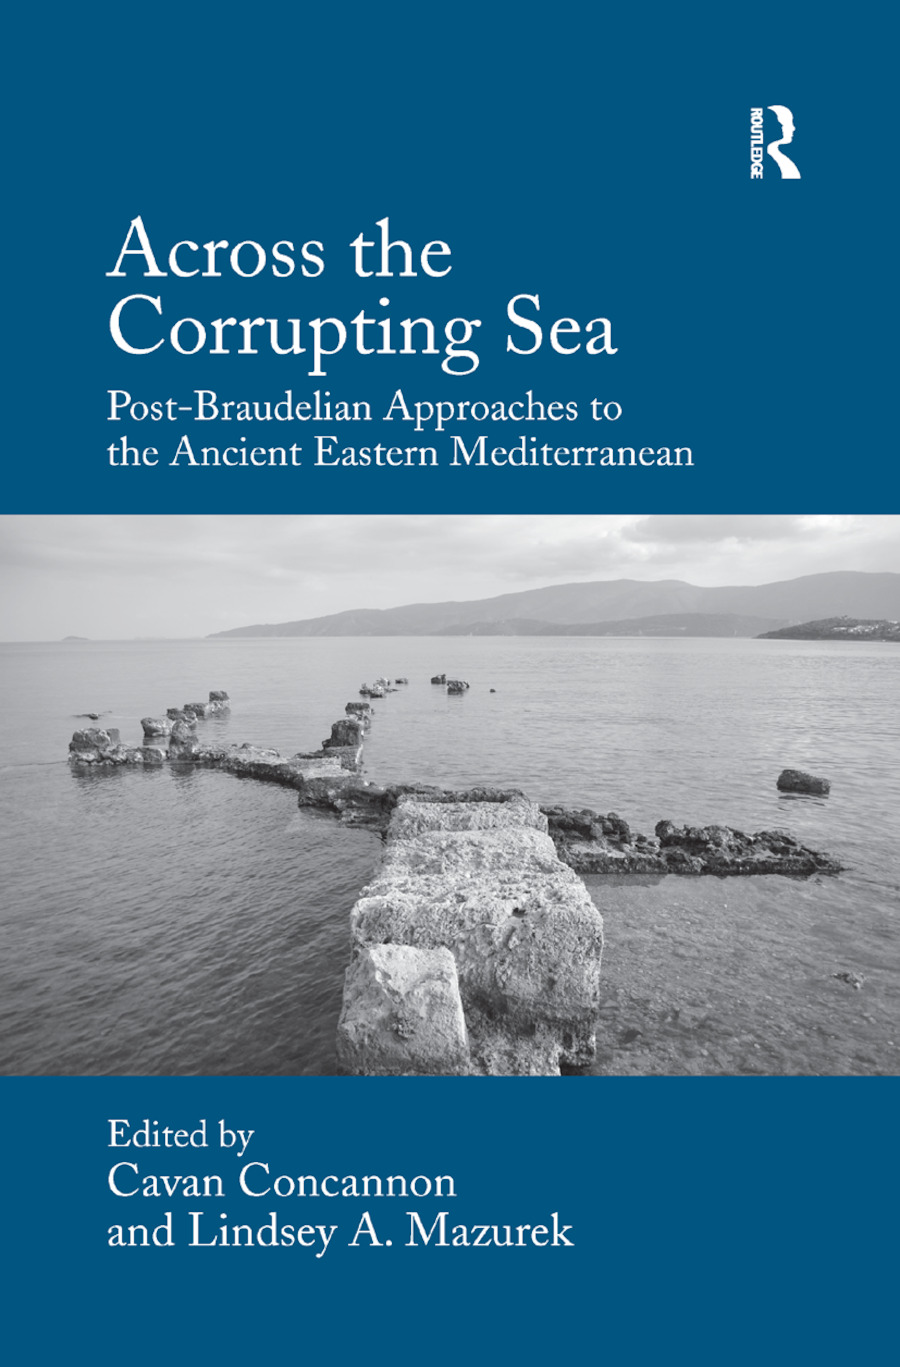 Across the Corrupting Sea: Post-Braudelian Approaches to the Ancient Eastern Mediterranean book cover